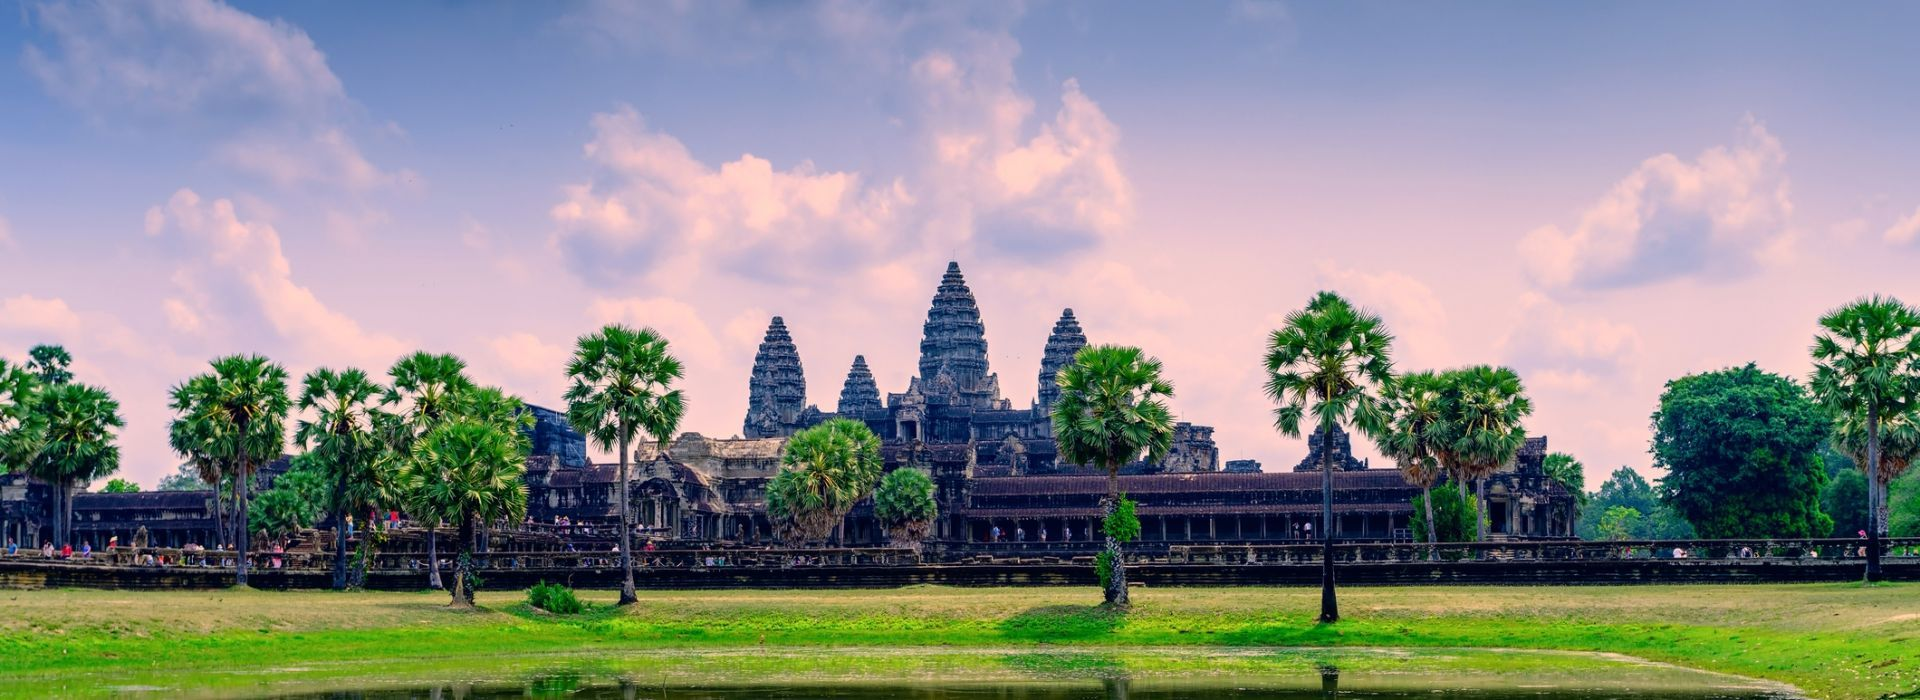 Beach, romance, getaways and relaxation Tours in Siem Reap